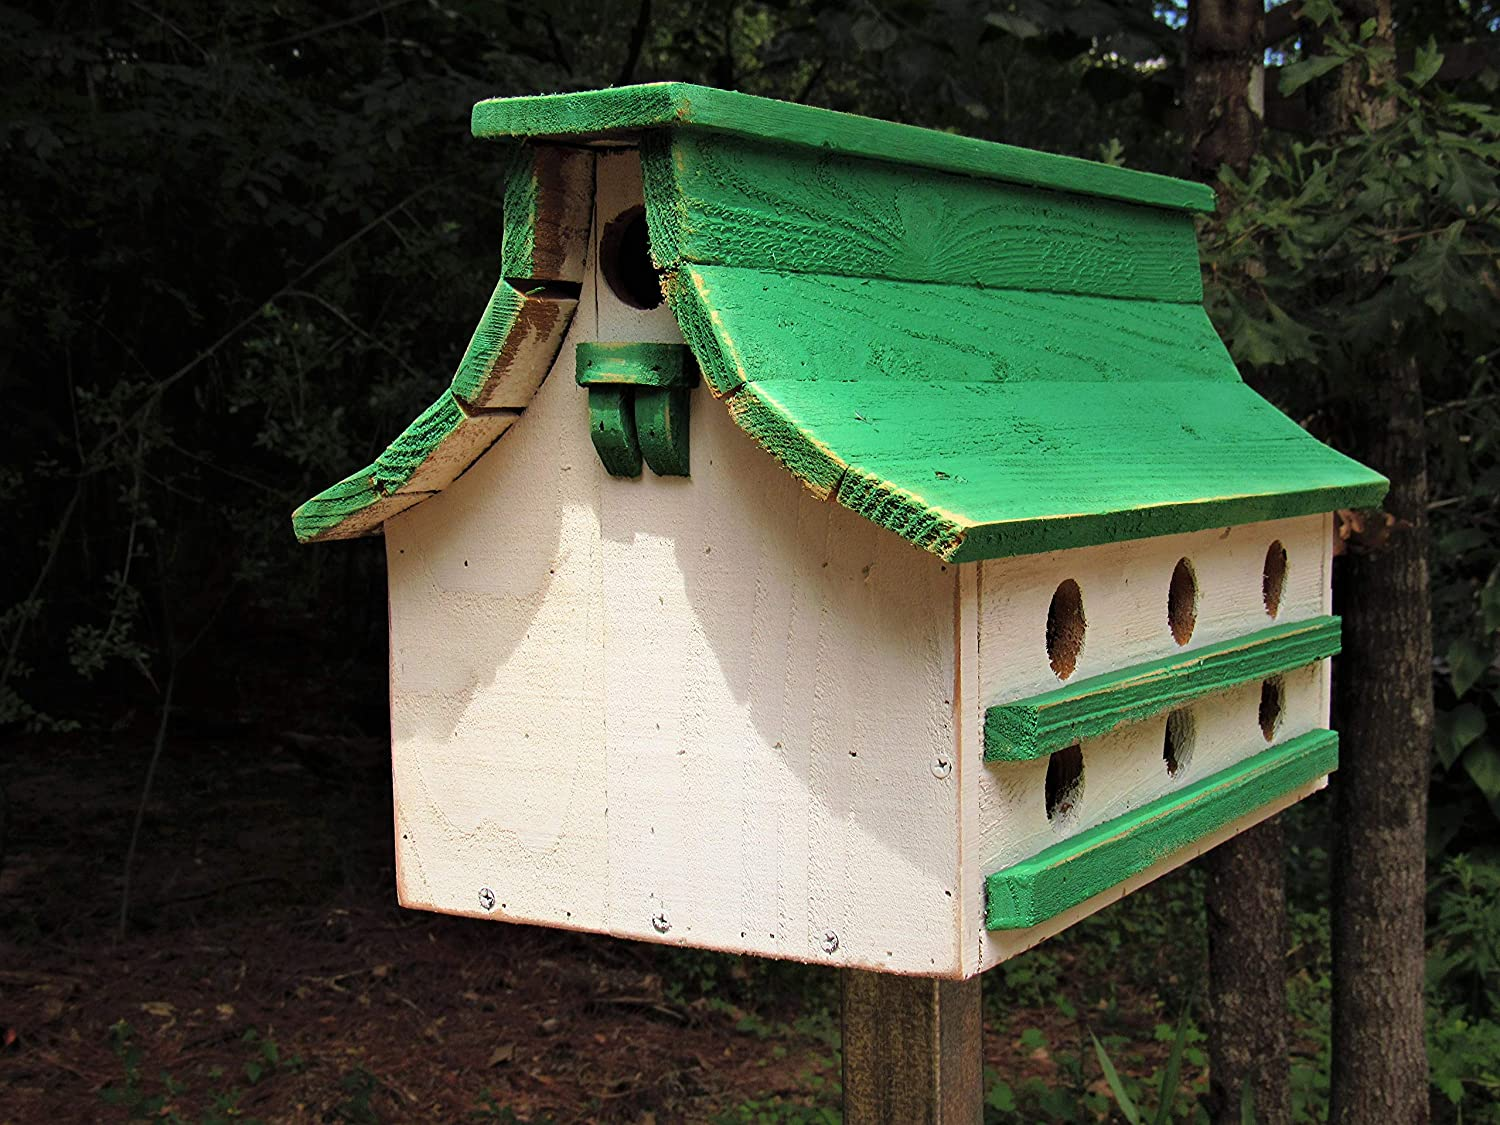 Purple Martin distressed green and white bird house, Handmade in Texas with reclaimed cedar! no pole included. farmhousefurnituretx